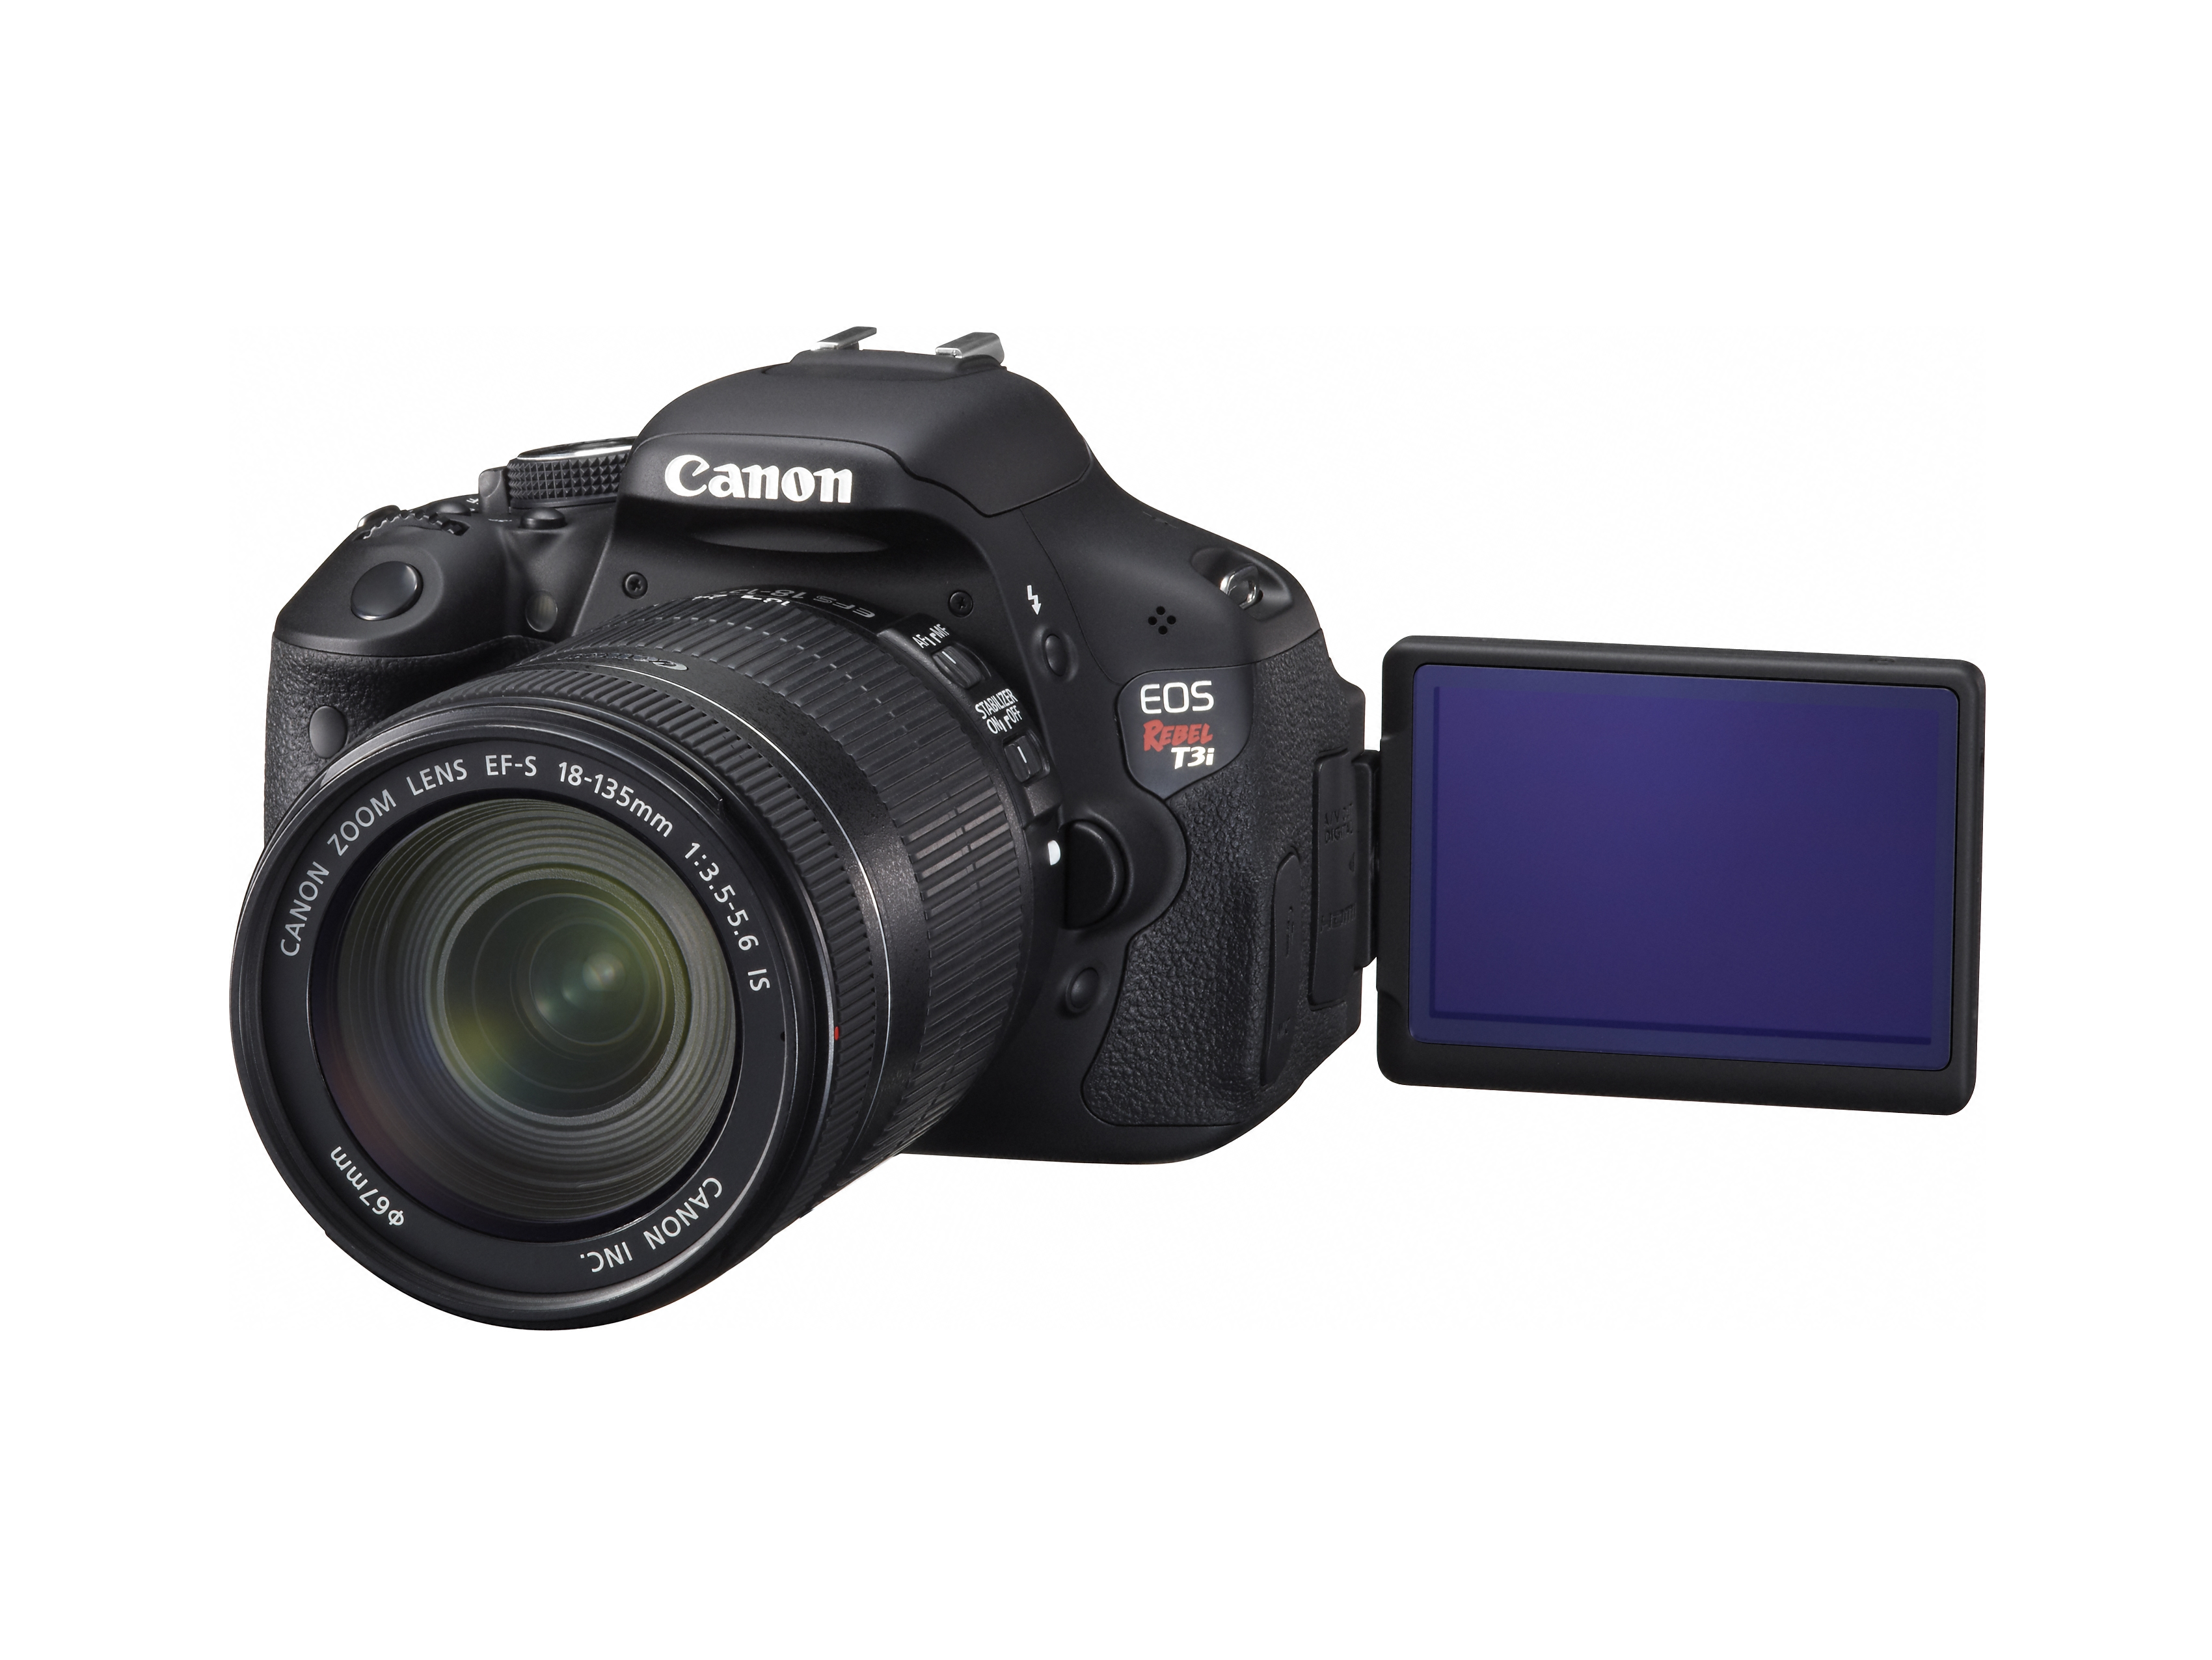 Canon Rebel T3i Overview